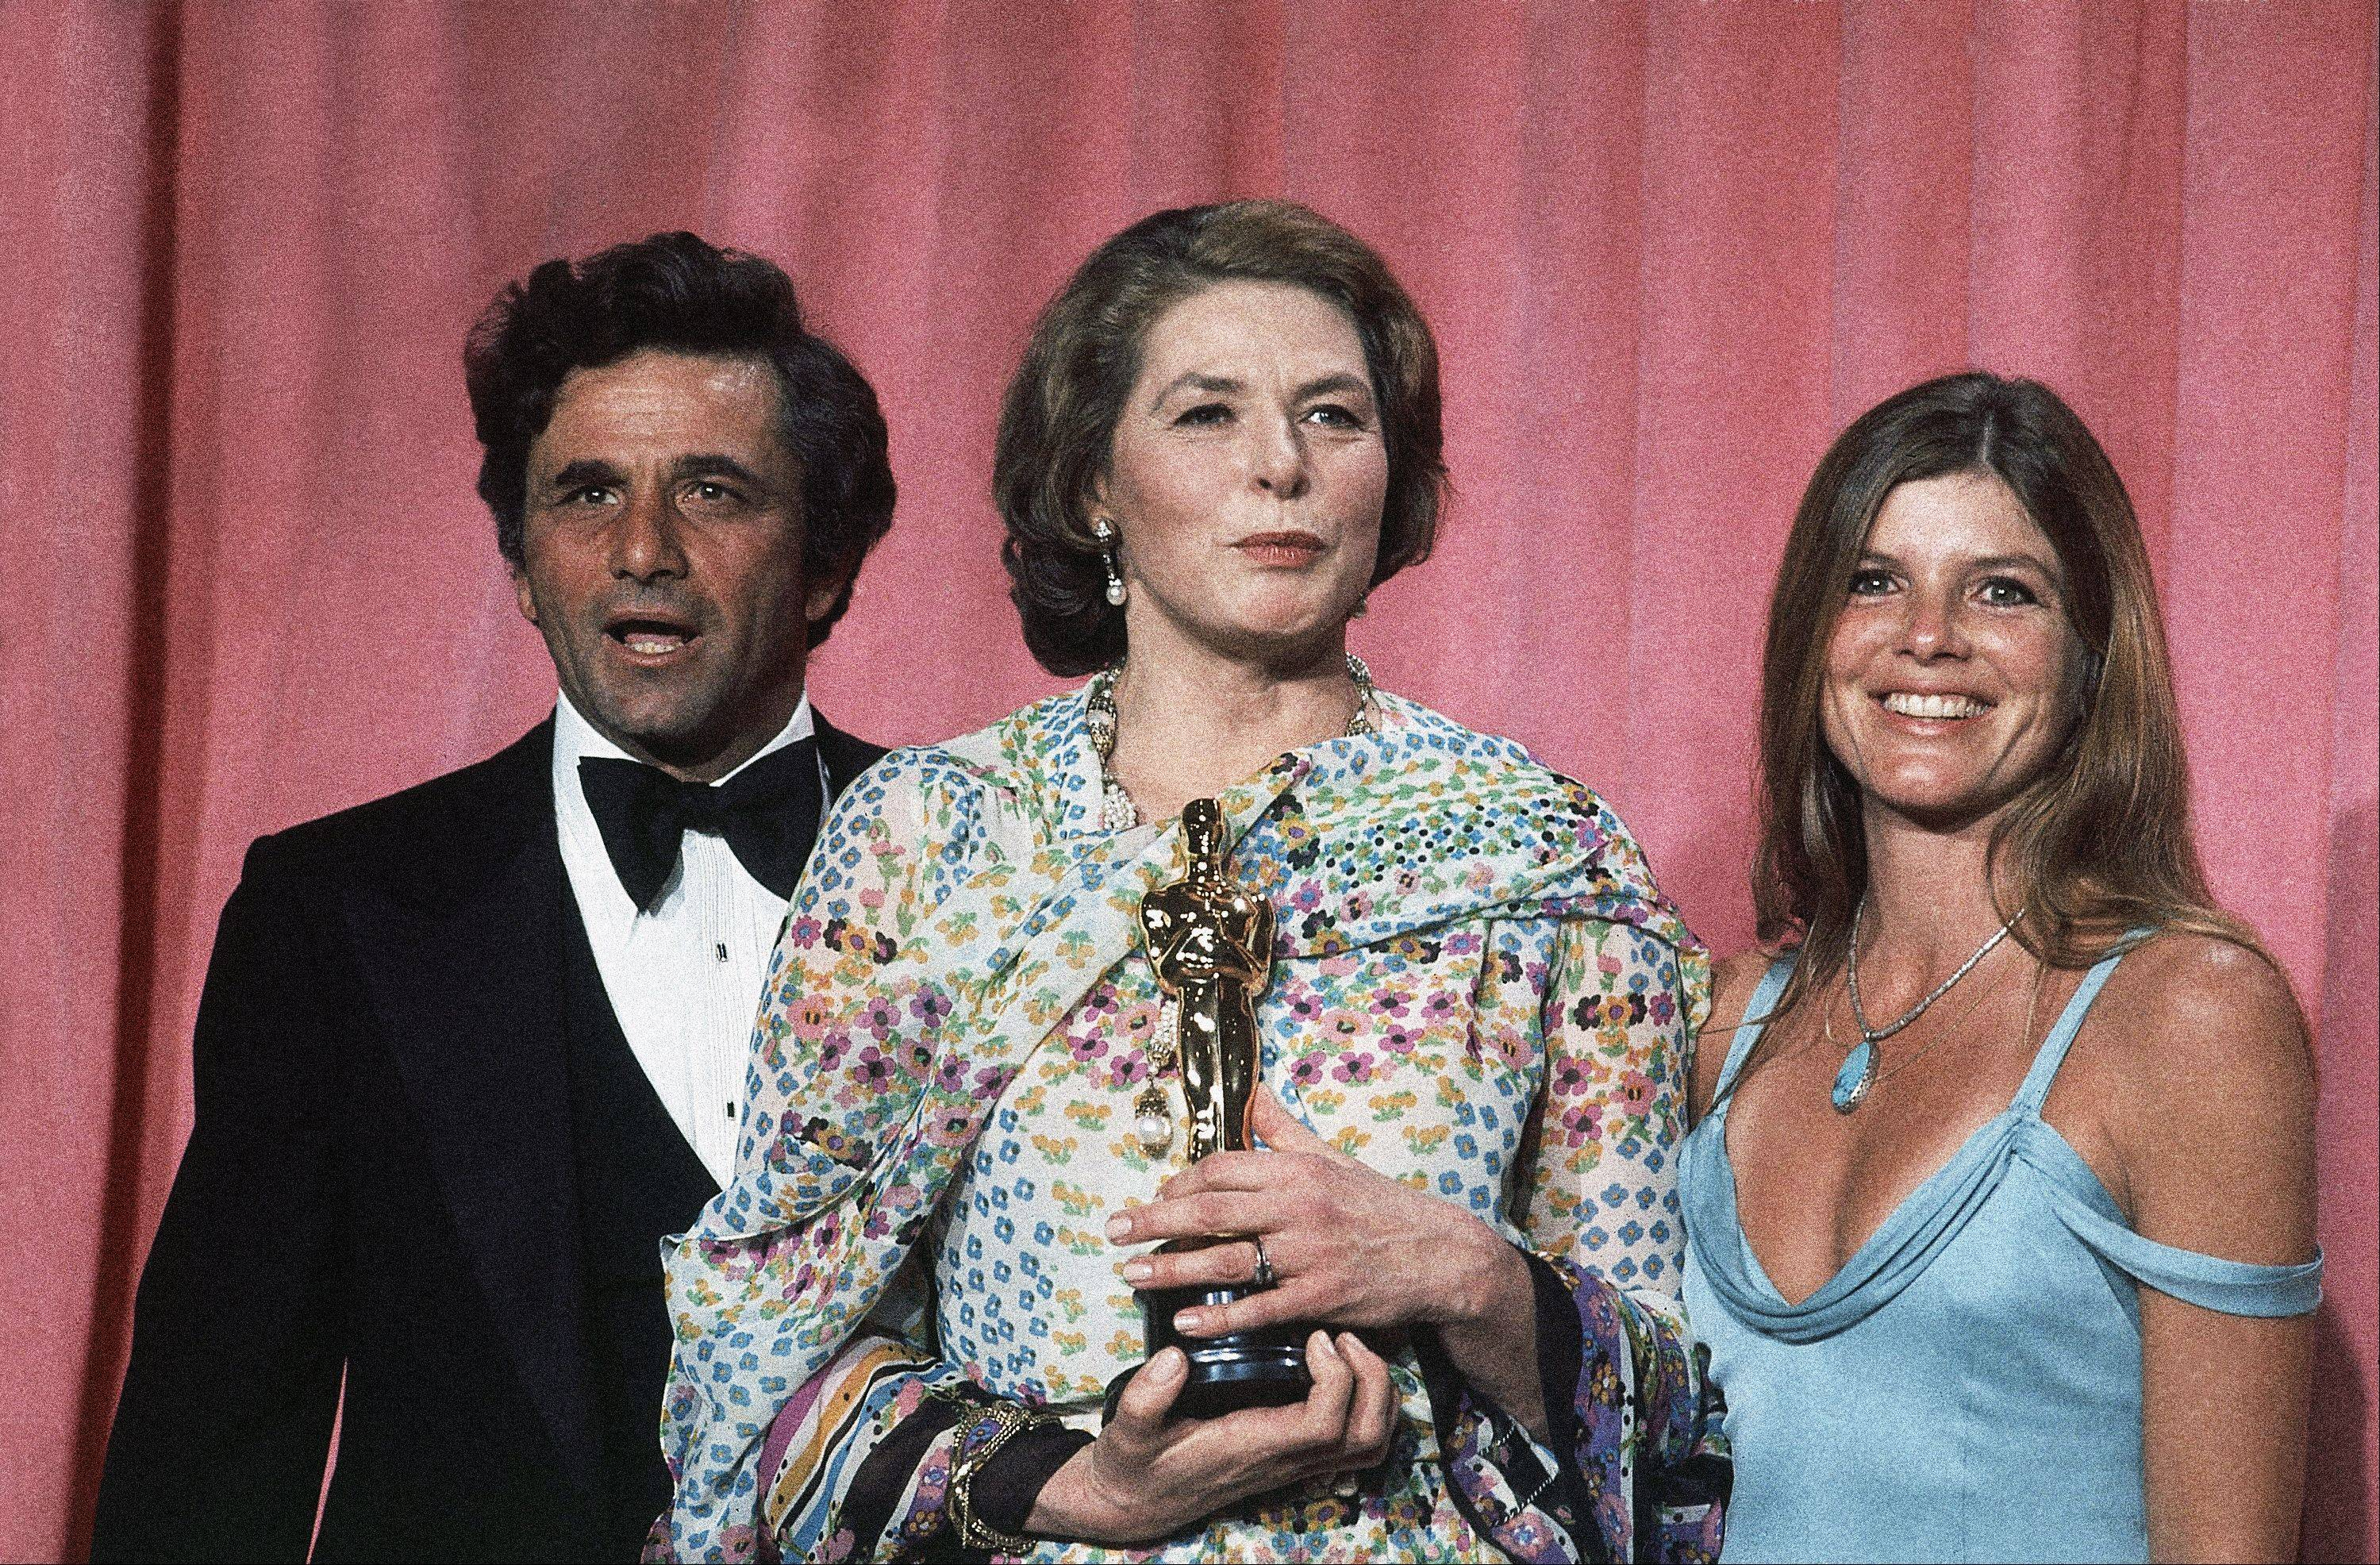 Ingrid Bergman at the 47th Annual Academy Awards ceremony at the Los Angeles Music Center with actor Peter Falk and actress Katherine Ross, who were the presenters April 9, 1975. Berman is holding her Oscar..